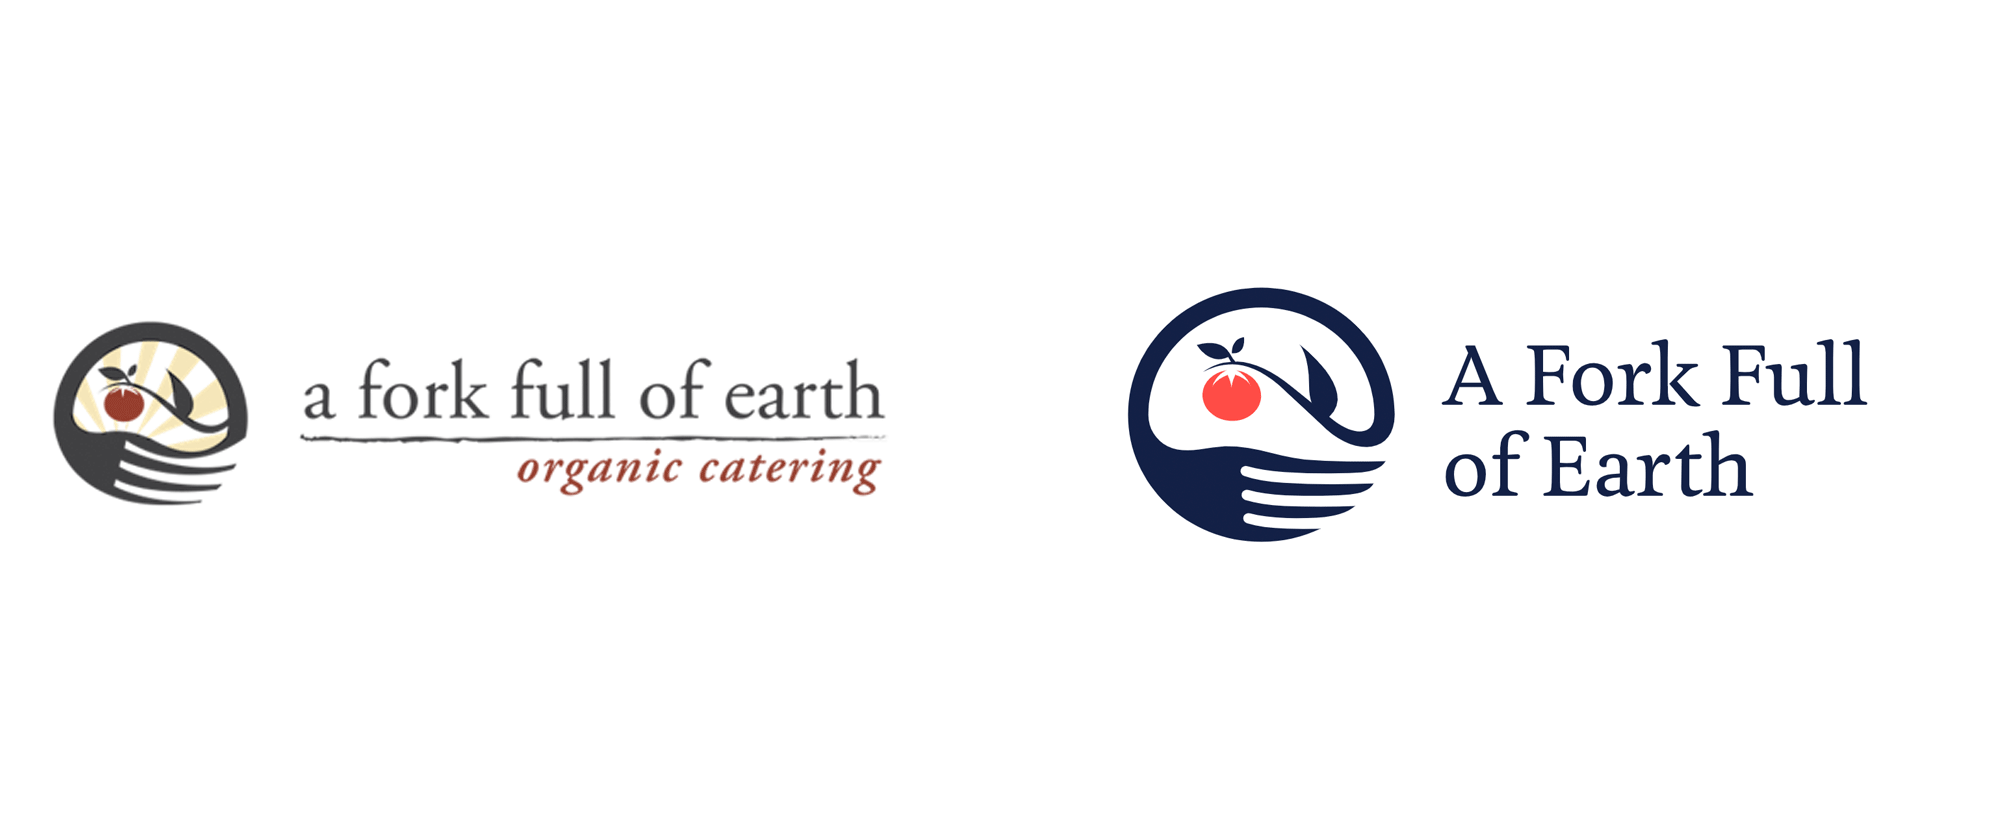 New Logo and Identity for A Fork Full of Earth by Noise13